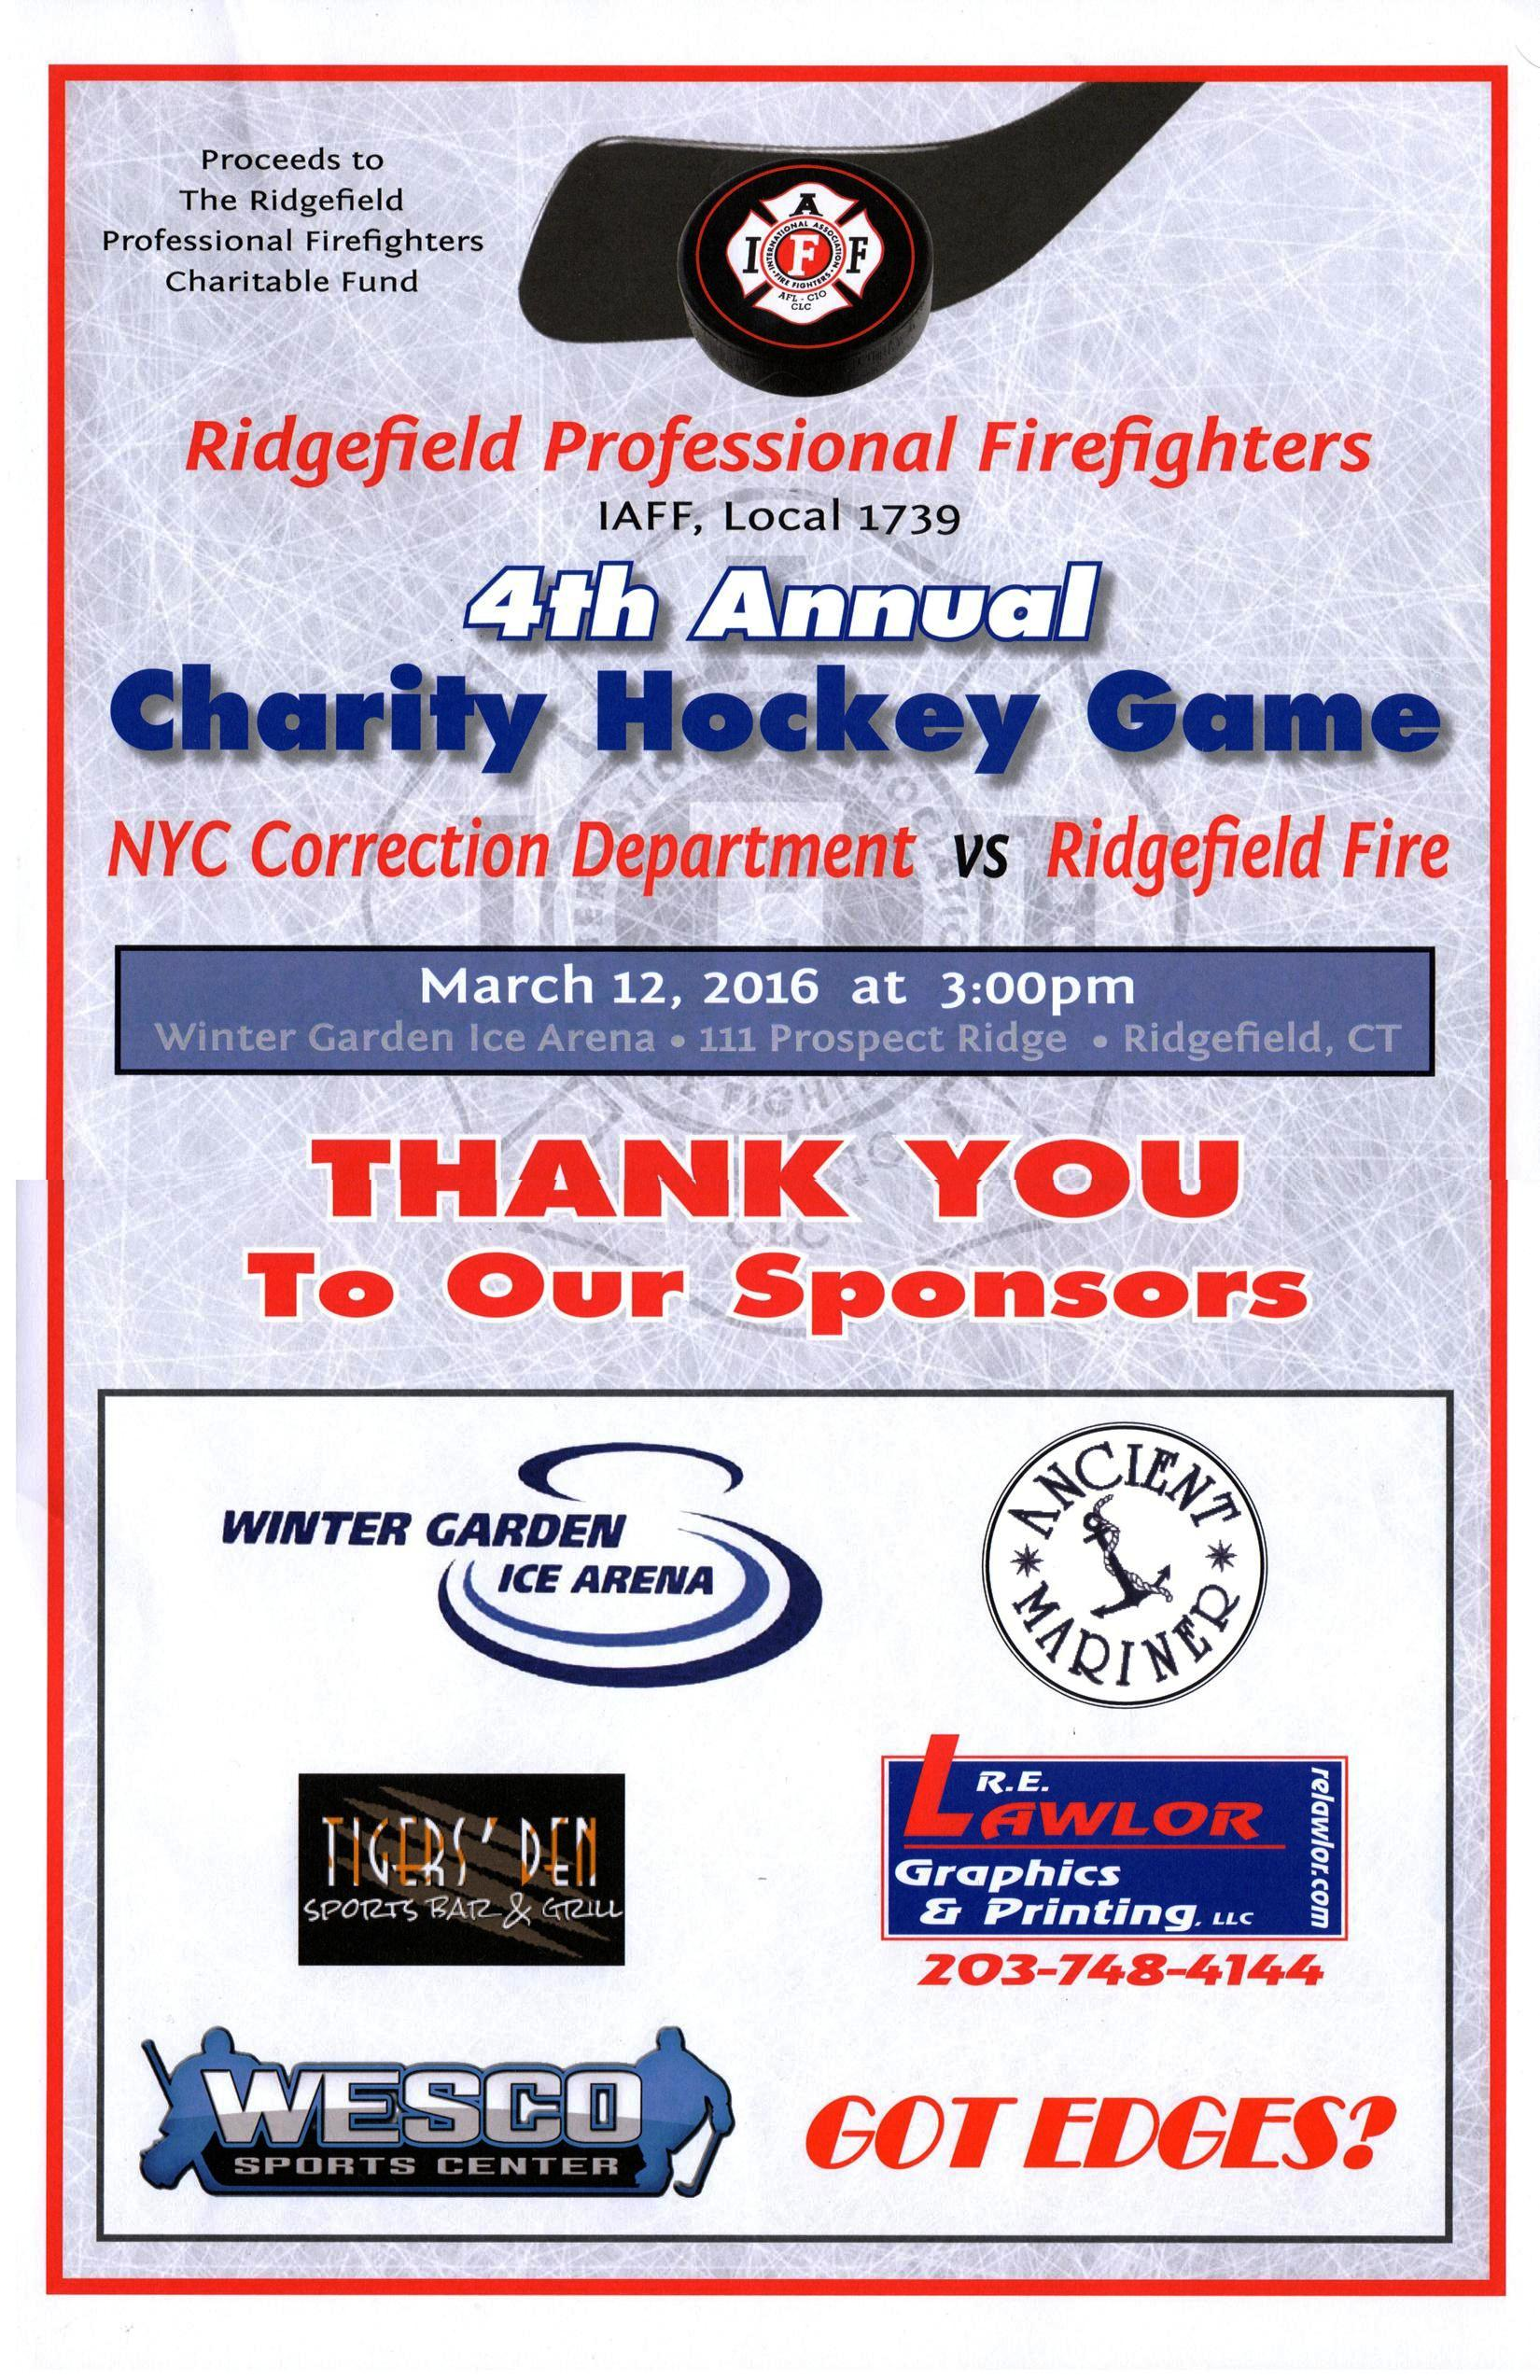 cheer on ridgefield professional firefighters in a charity hockey